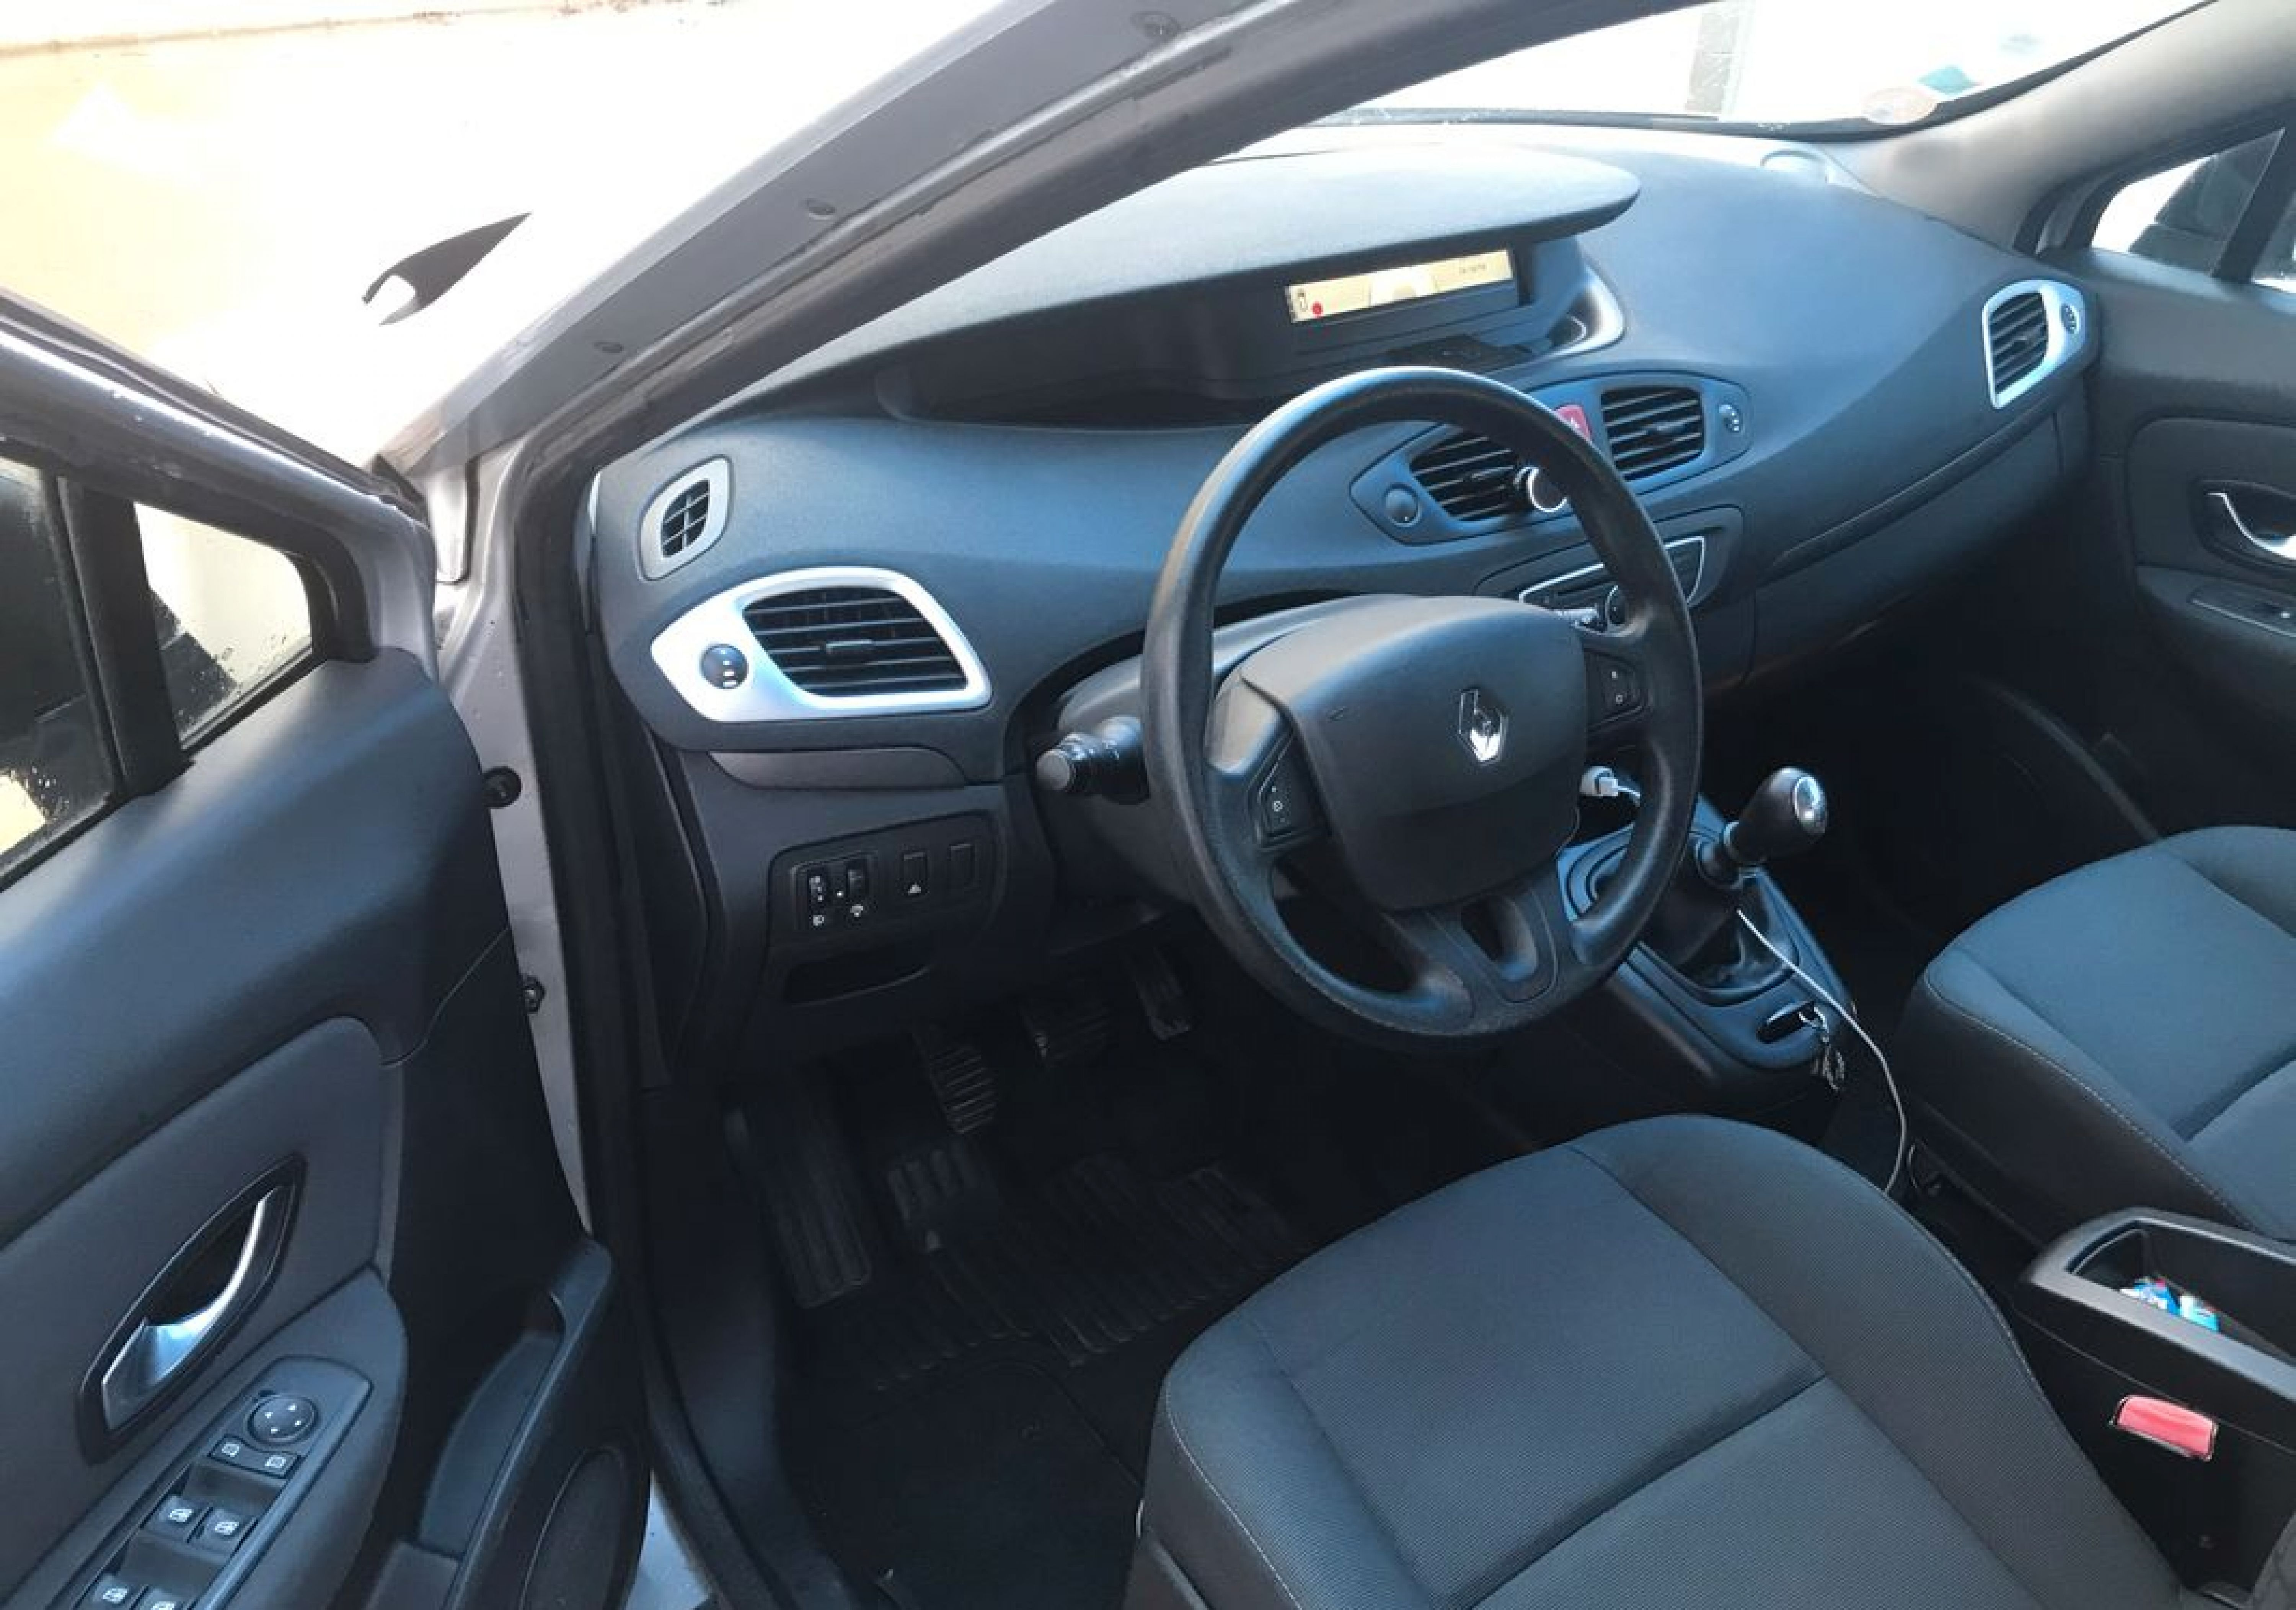 Renault scenic lll 1l5 dci - Photo 3